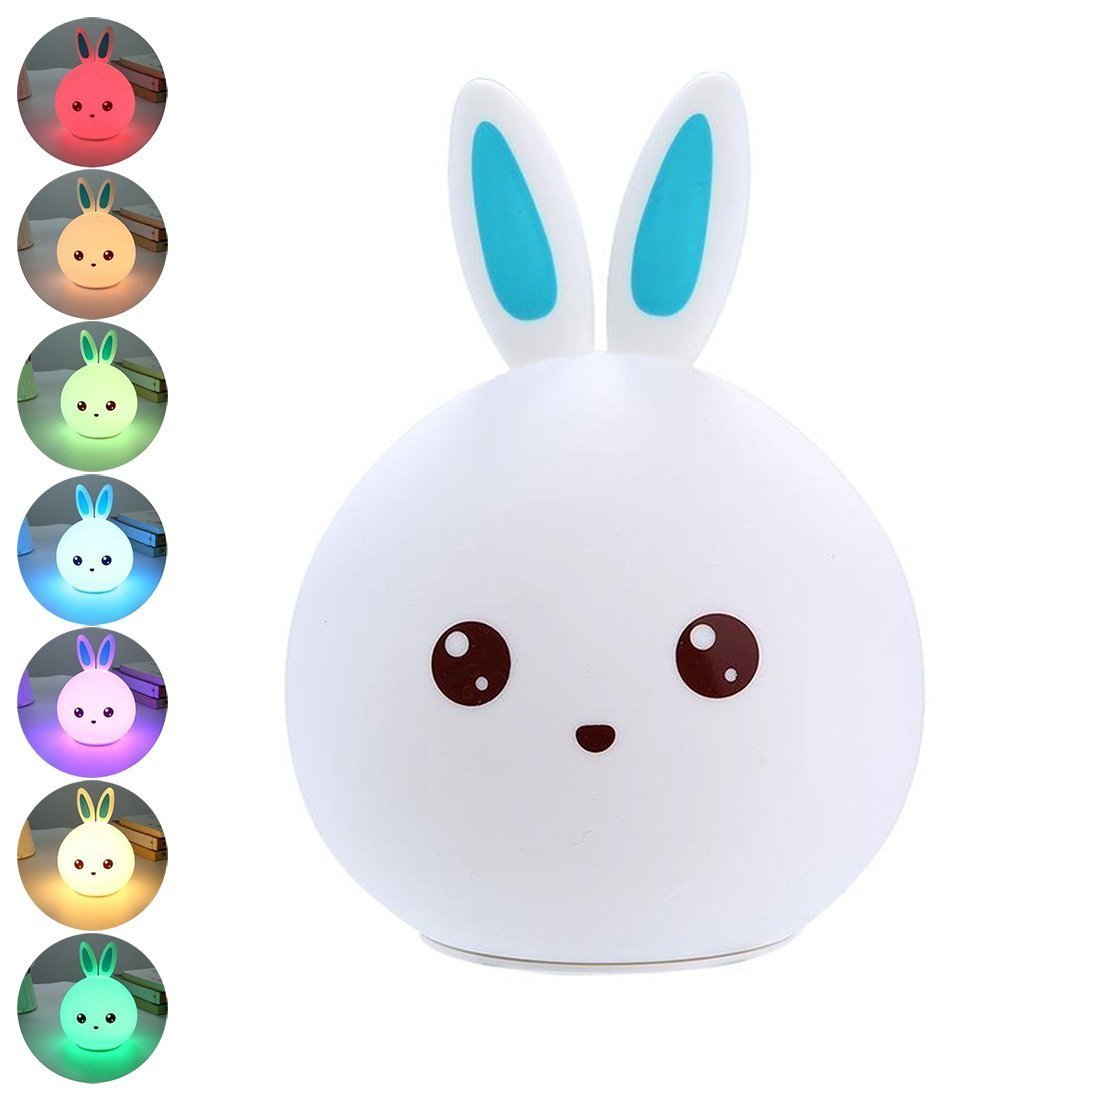 LED Silicone Rabbit Night Light Cute Soft Multicolor Touch Sensor Tap Control Baby USB Rechargeable Nursery Lamp Kid Bedside Toy 7 color changing rabbit led night light silicone touch sensor tap control nightlight remote controller for kids children baby